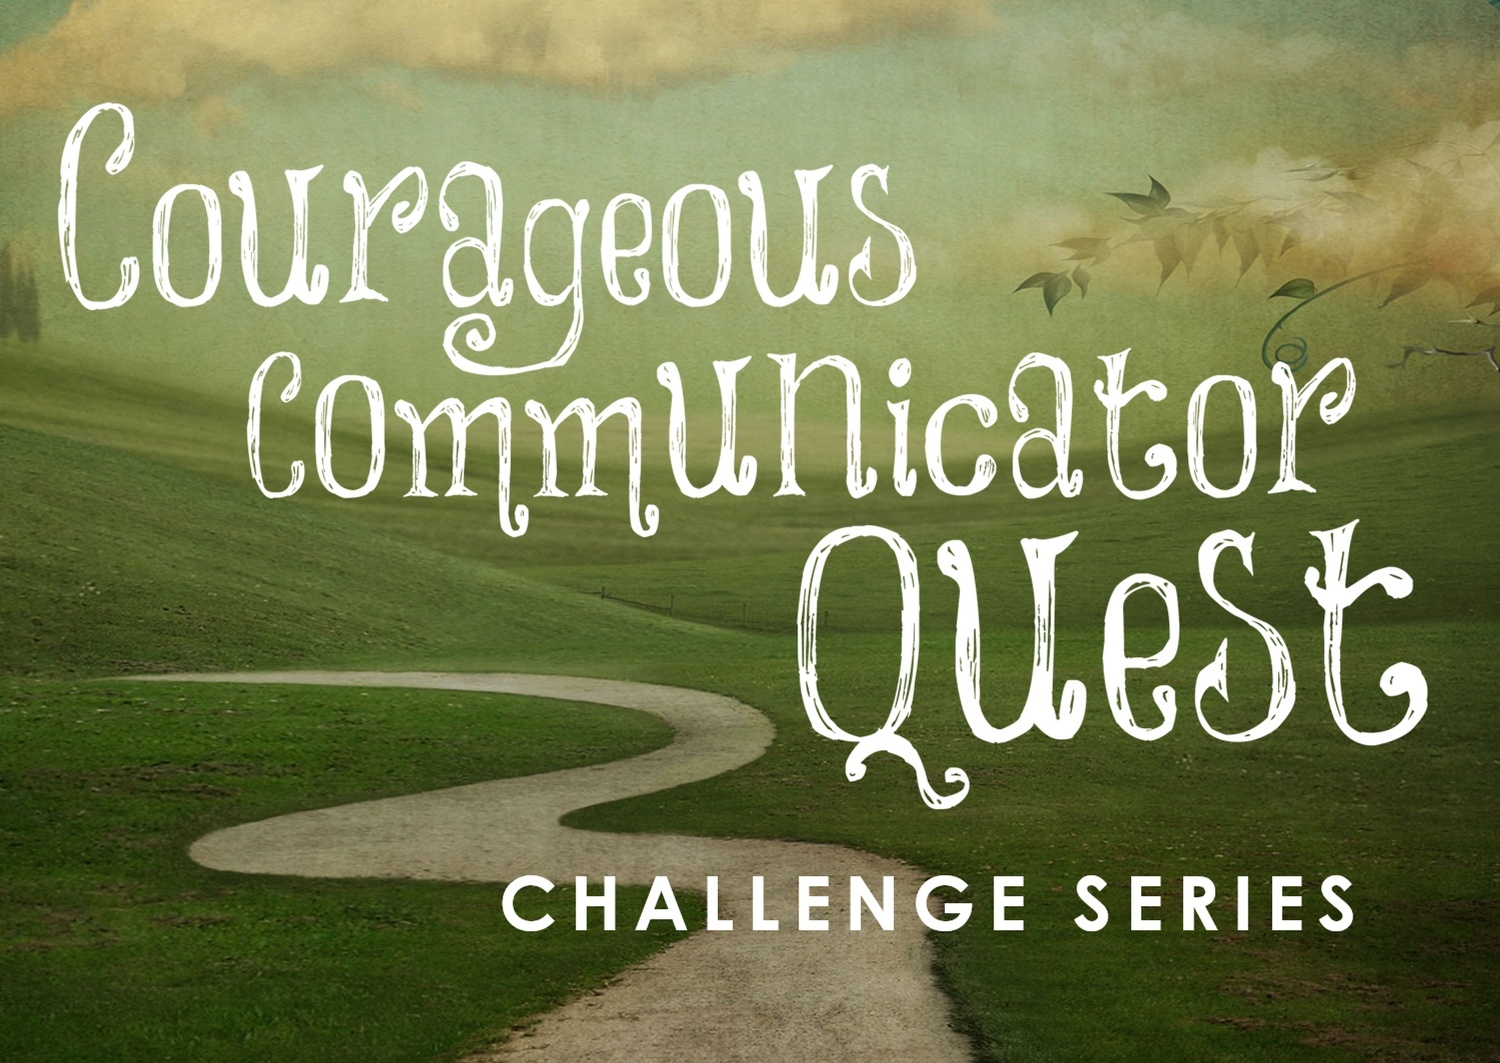 Courageous-Comm-Quest-Series-Introduction.jpg